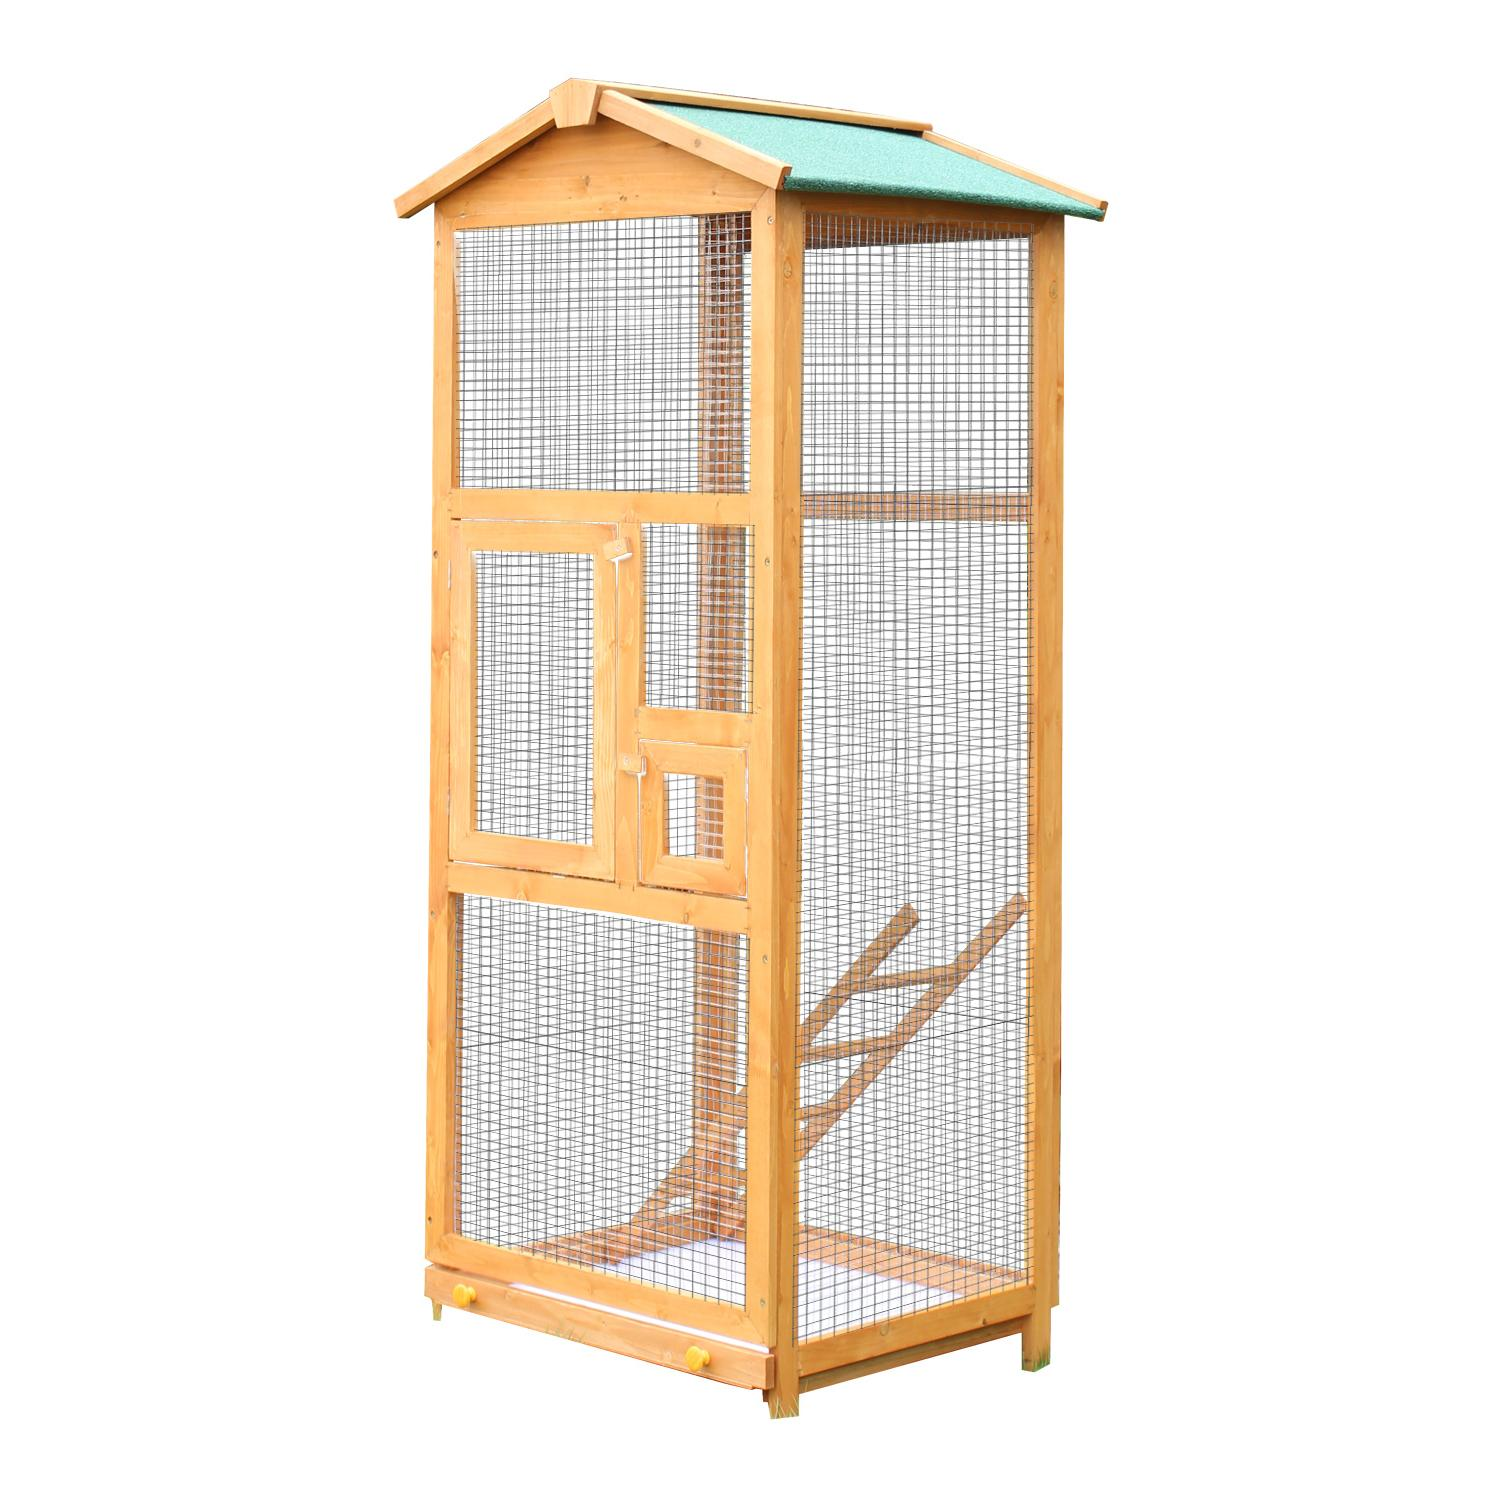 Wooden Large Bird Cage 65? Pet Play Covered House Ladder Fee